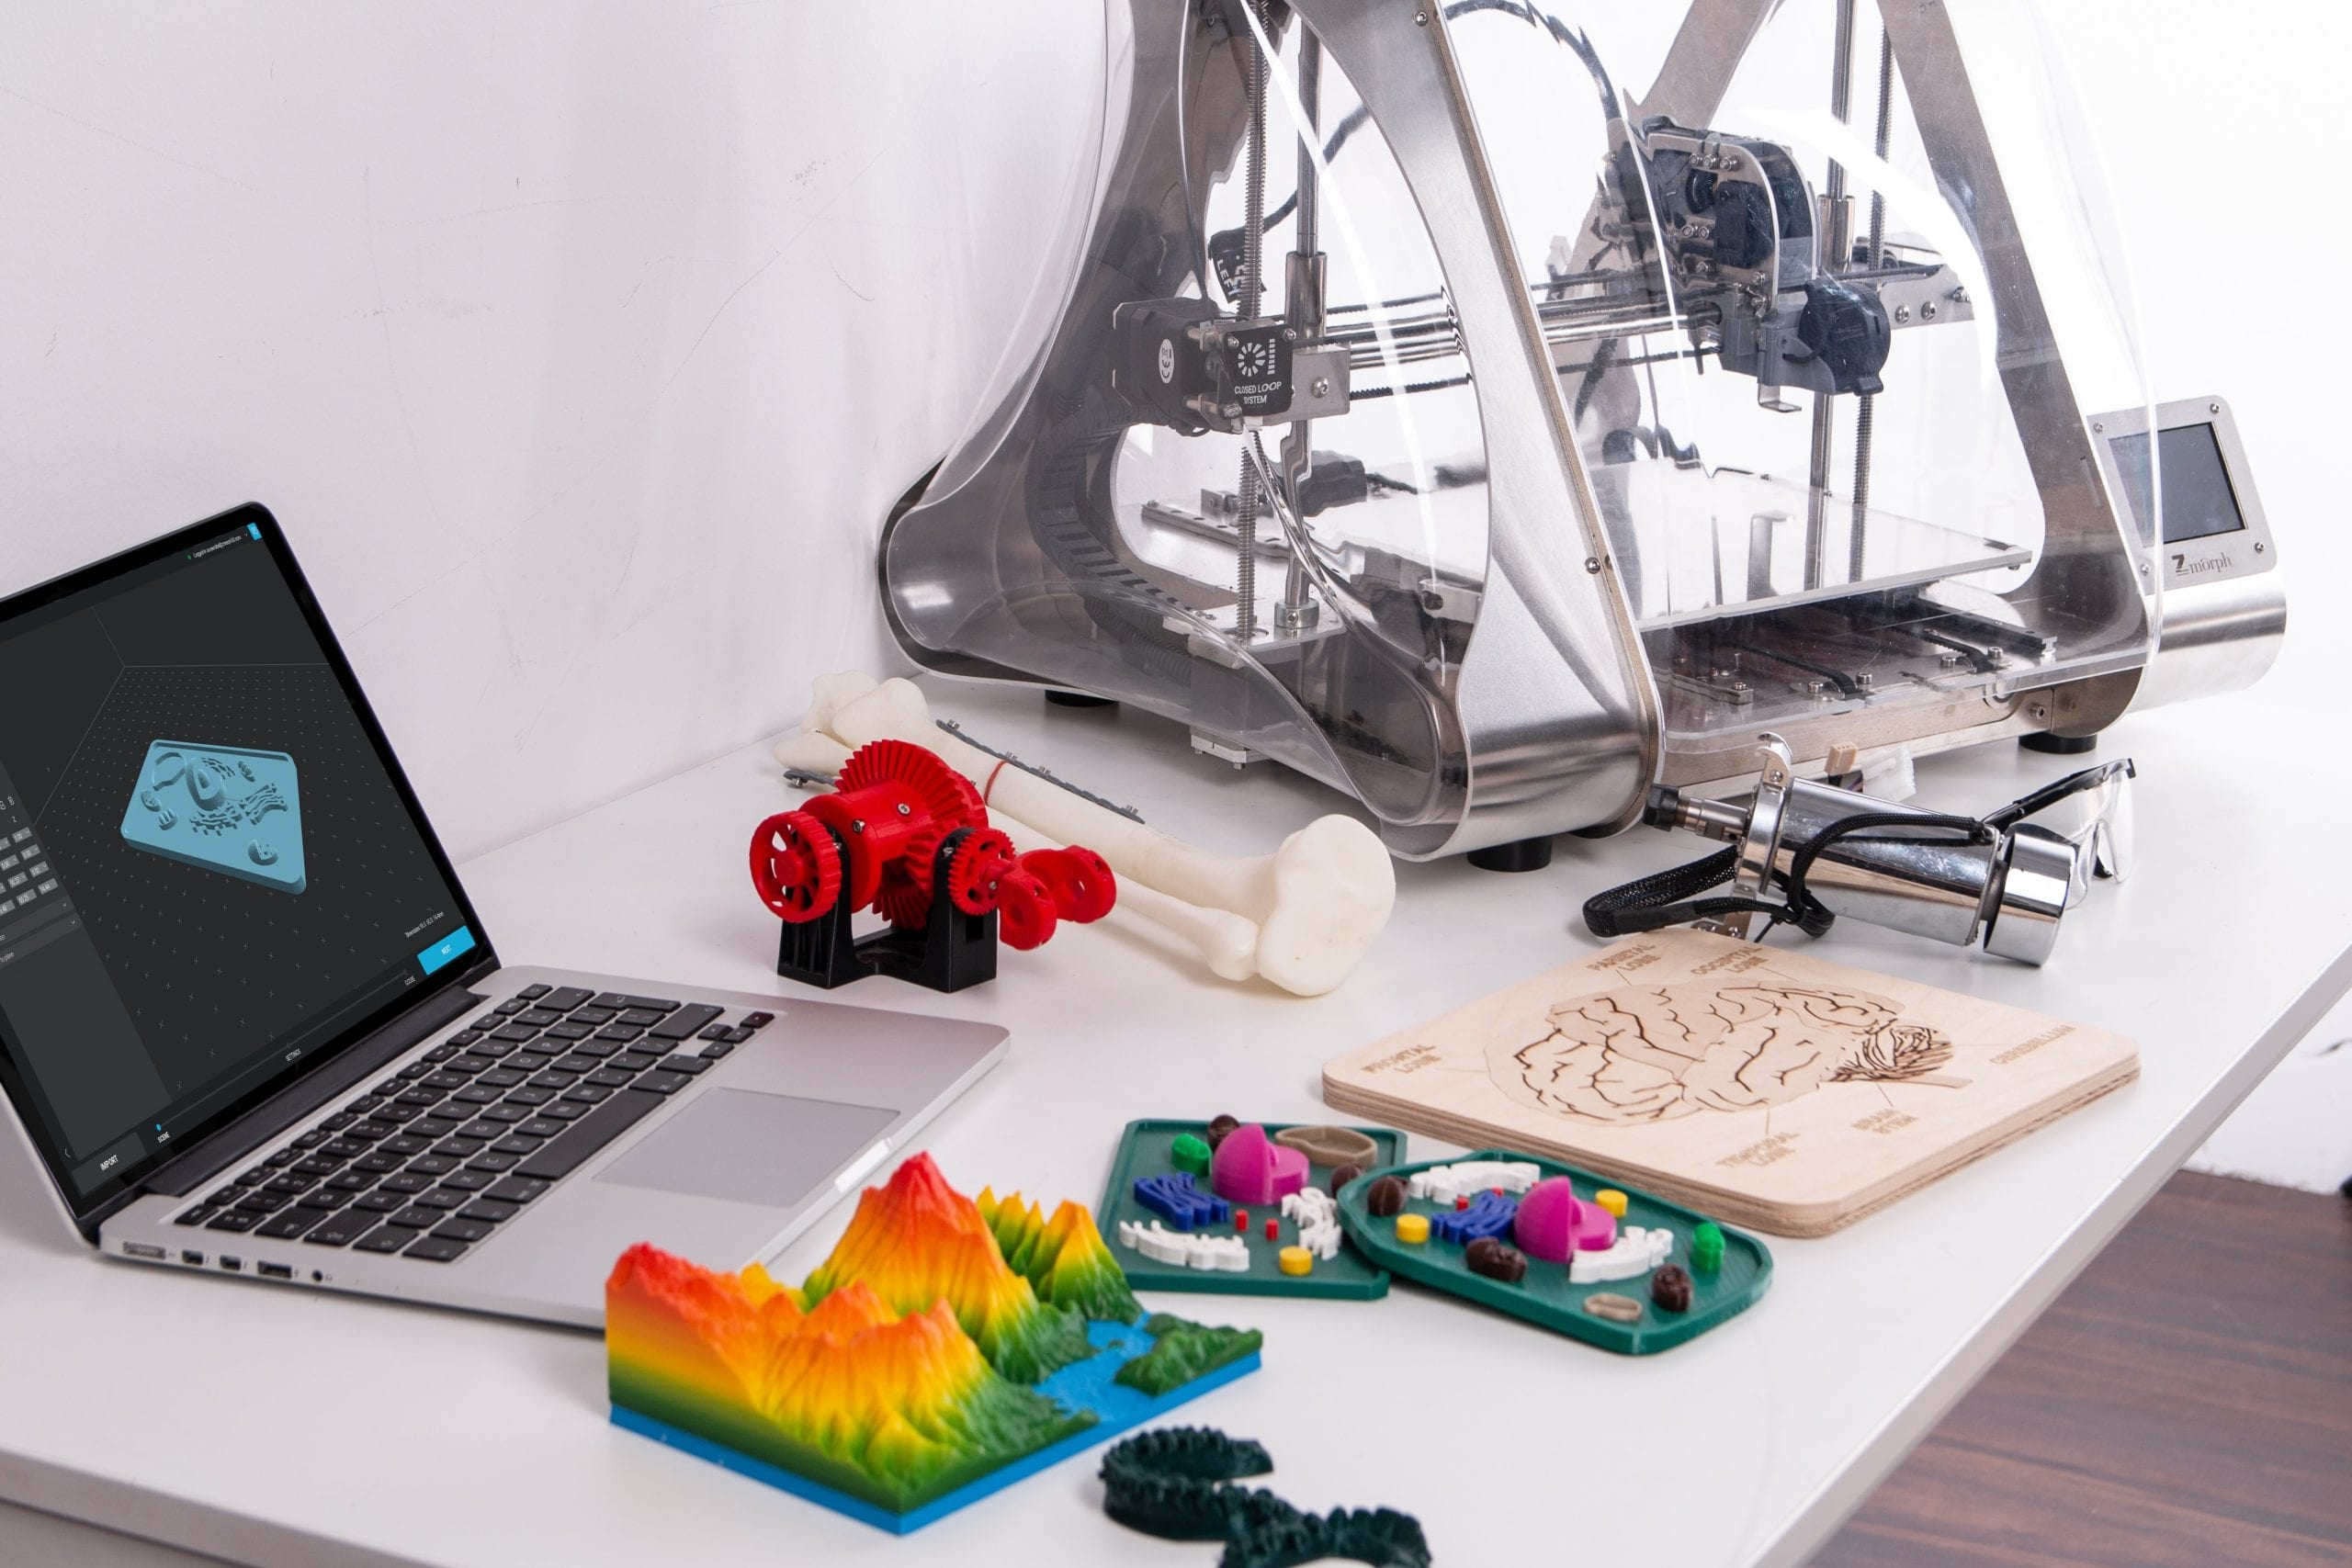 3D Printing Emerges As Option For Addressing Healthcare Equipment Shortages